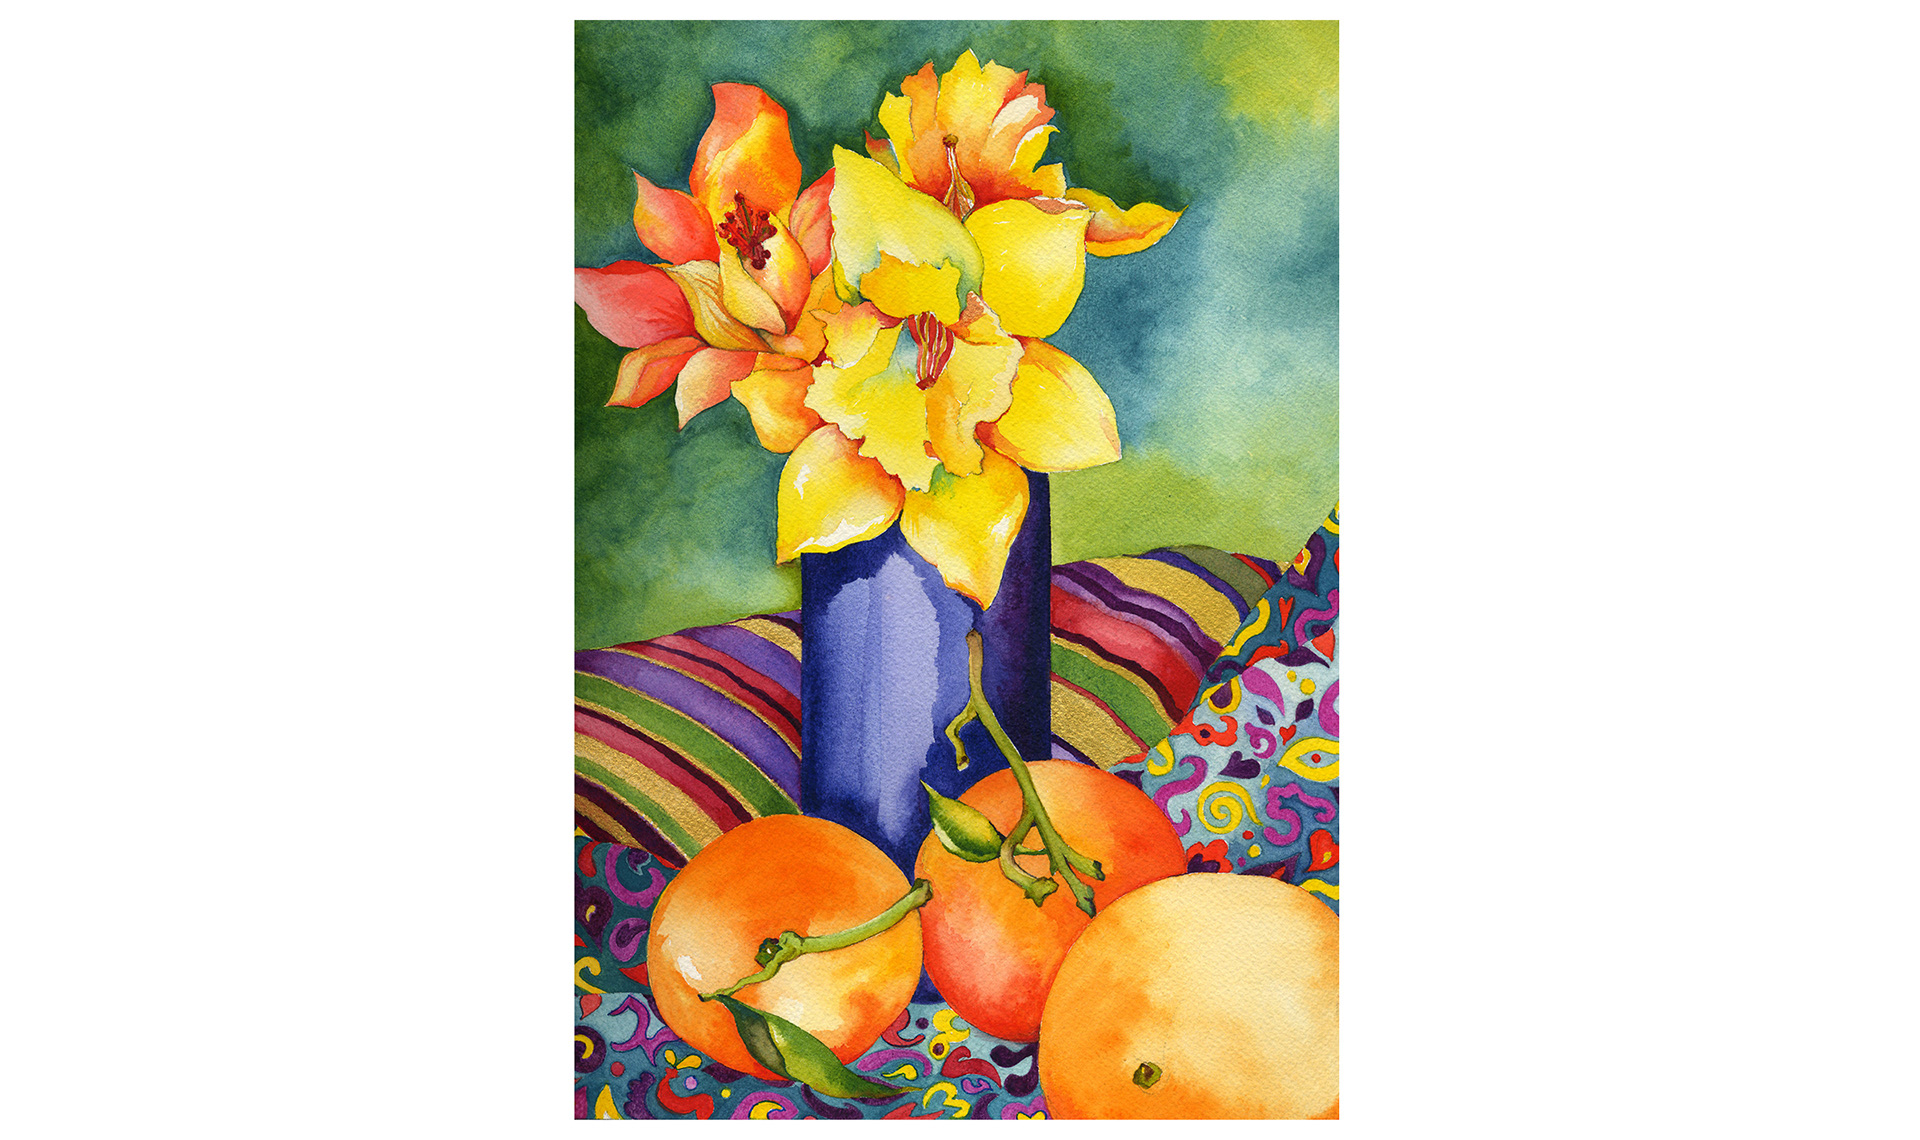 Watercolor painting of daffodils and oranges on colorful print cloth